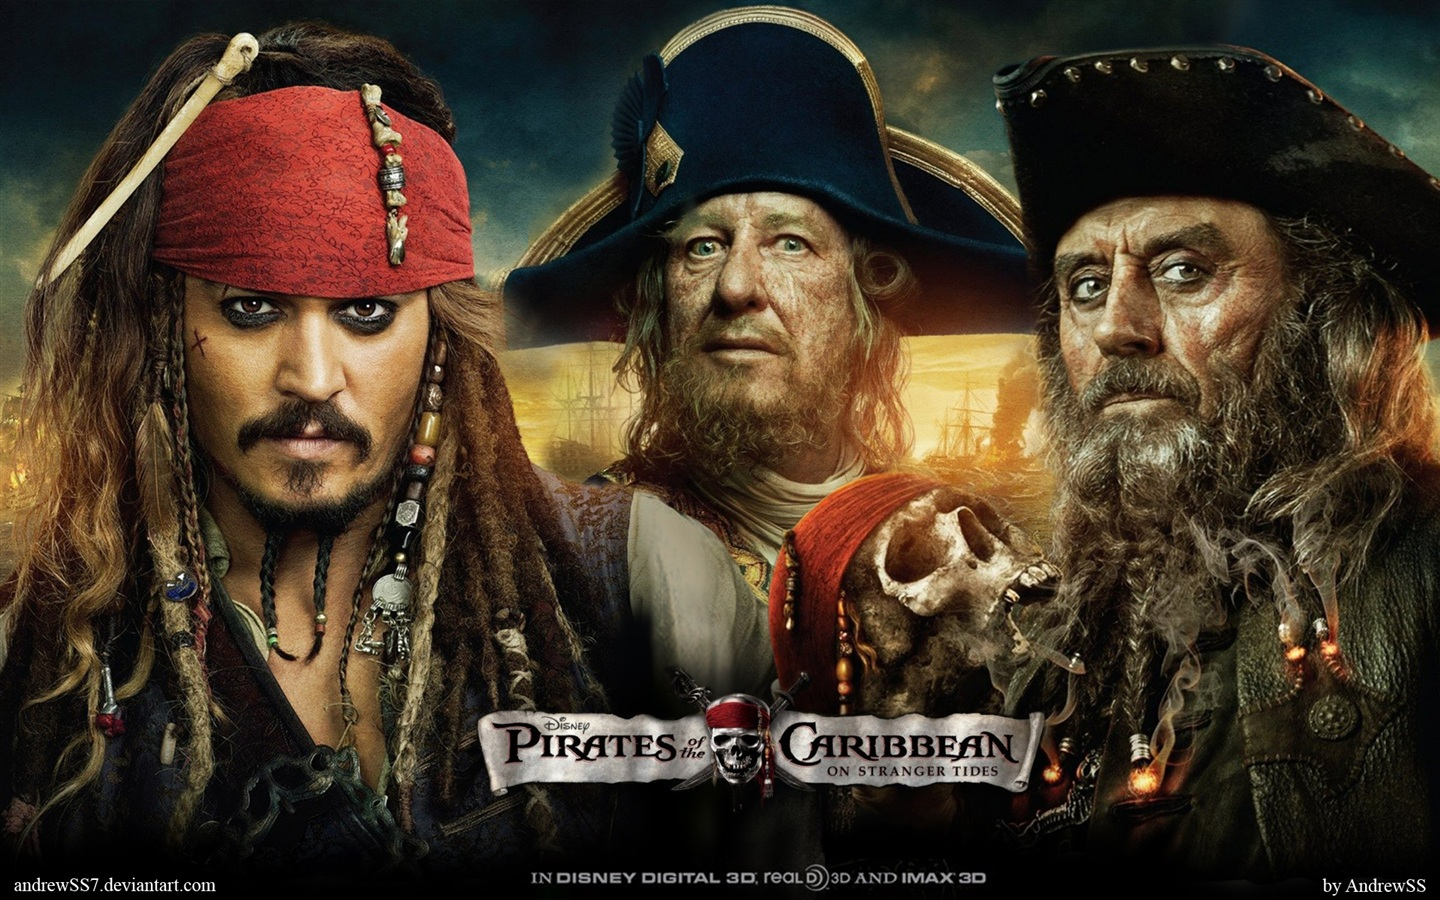 pirates of caribbean 3 full movie download in hindi 480p